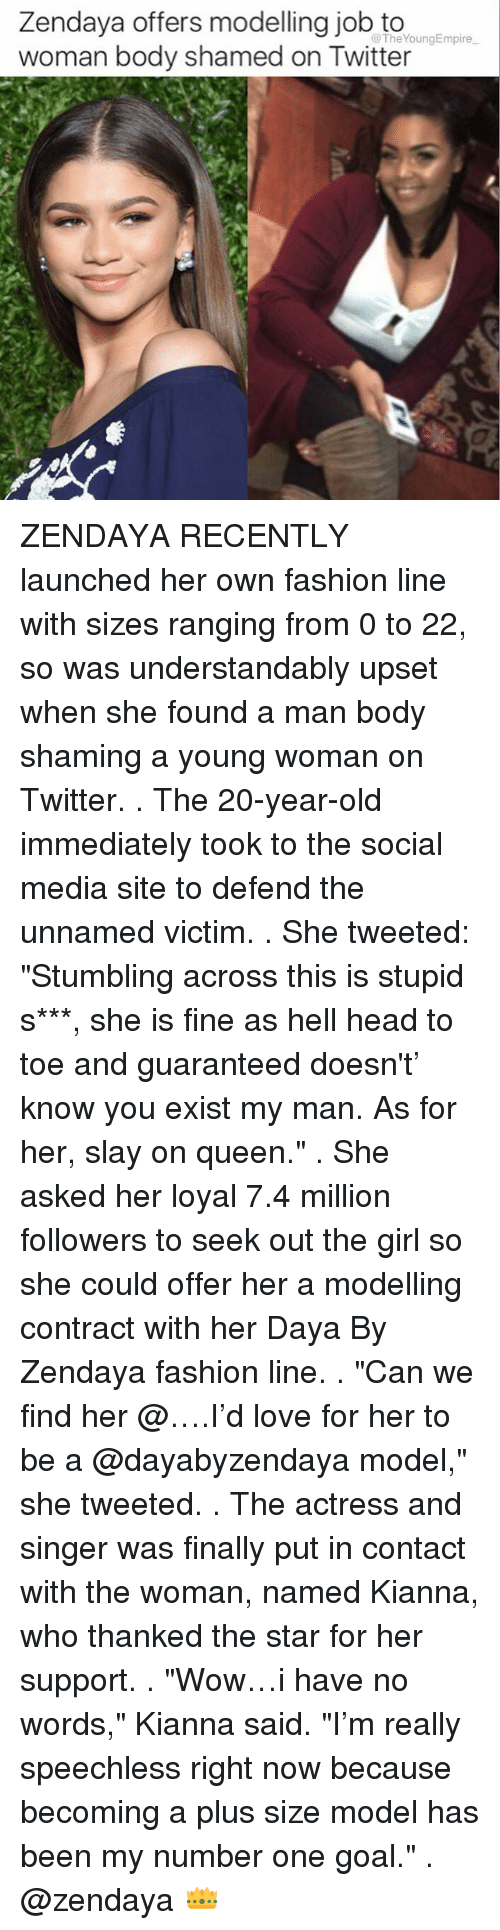 """Memes, Zendaya, and Daya: Zendaya offers modelling job to  @The YoungEmpire  woman body shamed on Twitter ZENDAYA RECENTLY launched her own fashion line with sizes ranging from 0 to 22, so was understandably upset when she found a man body shaming a young woman on Twitter. . The 20-year-old immediately took to the social media site to defend the unnamed victim. . She tweeted: """"Stumbling across this is stupid s***, she is fine as hell head to toe and guaranteed doesn't' know you exist my man. As for her, slay on queen."""" . She asked her loyal 7.4 million followers to seek out the girl so she could offer her a modelling contract with her Daya By Zendaya fashion line. . """"Can we find her @….I'd love for her to be a @dayabyzendaya model,"""" she tweeted. . The actress and singer was finally put in contact with the woman, named Kianna, who thanked the star for her support. . """"Wow…i have no words,"""" Kianna said. """"I'm really speechless right now because becoming a plus size model has been my number one goal."""" . @zendaya 👑"""